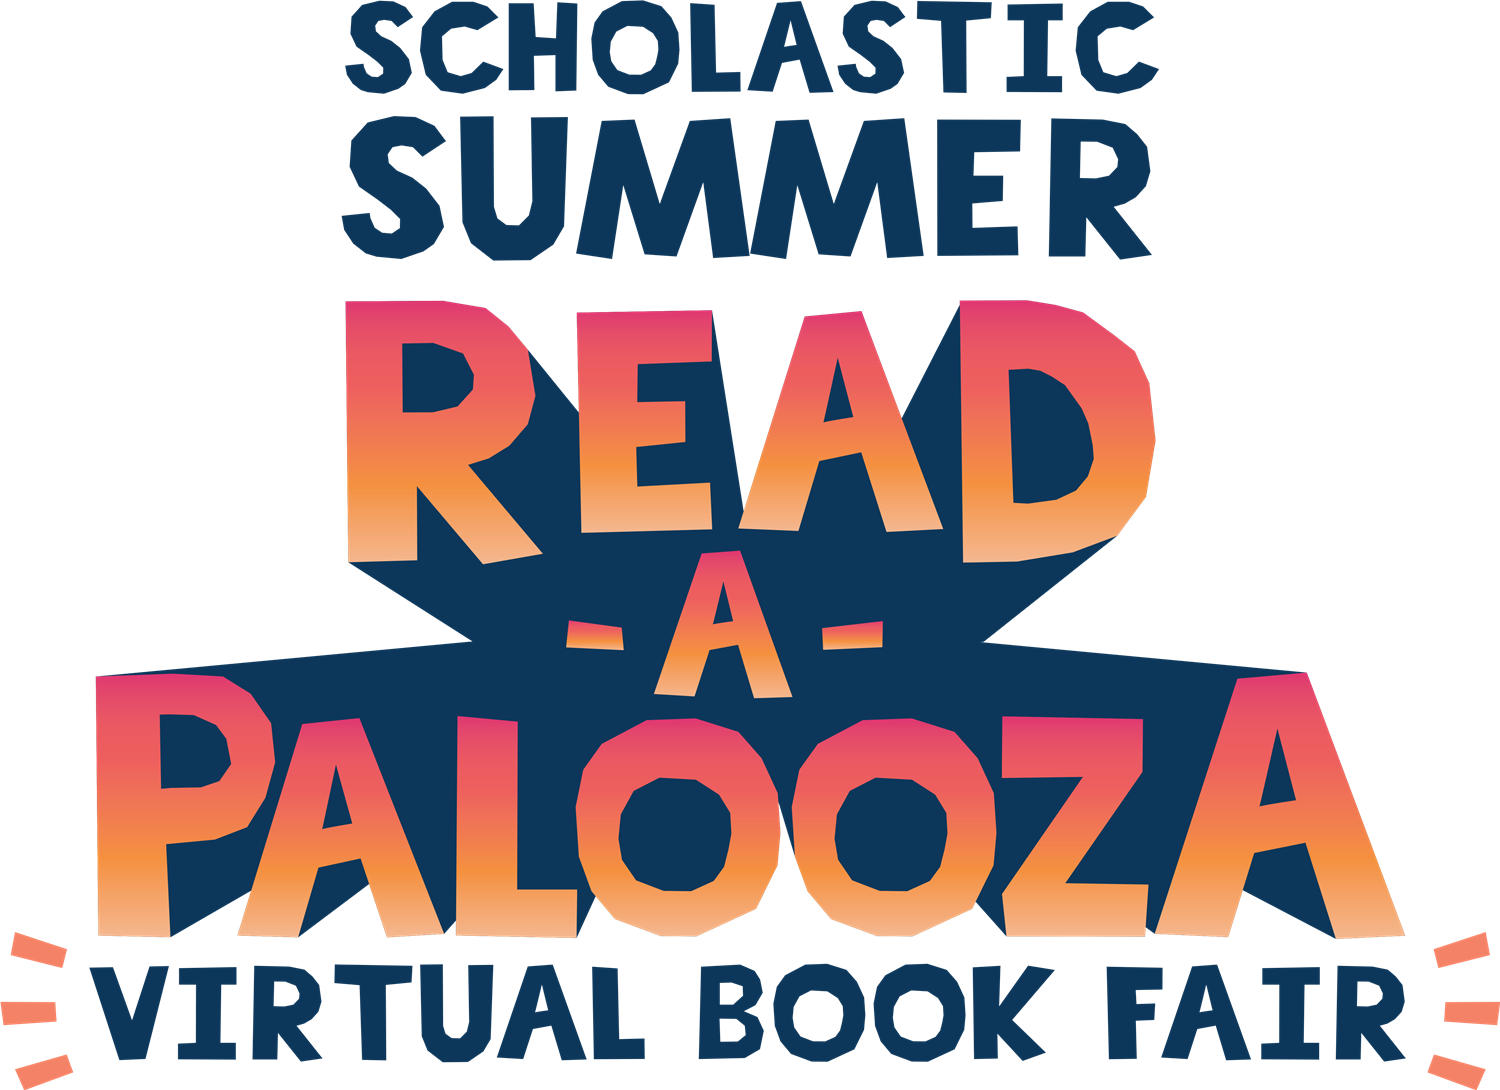 Online Book Fair Open All Summer!